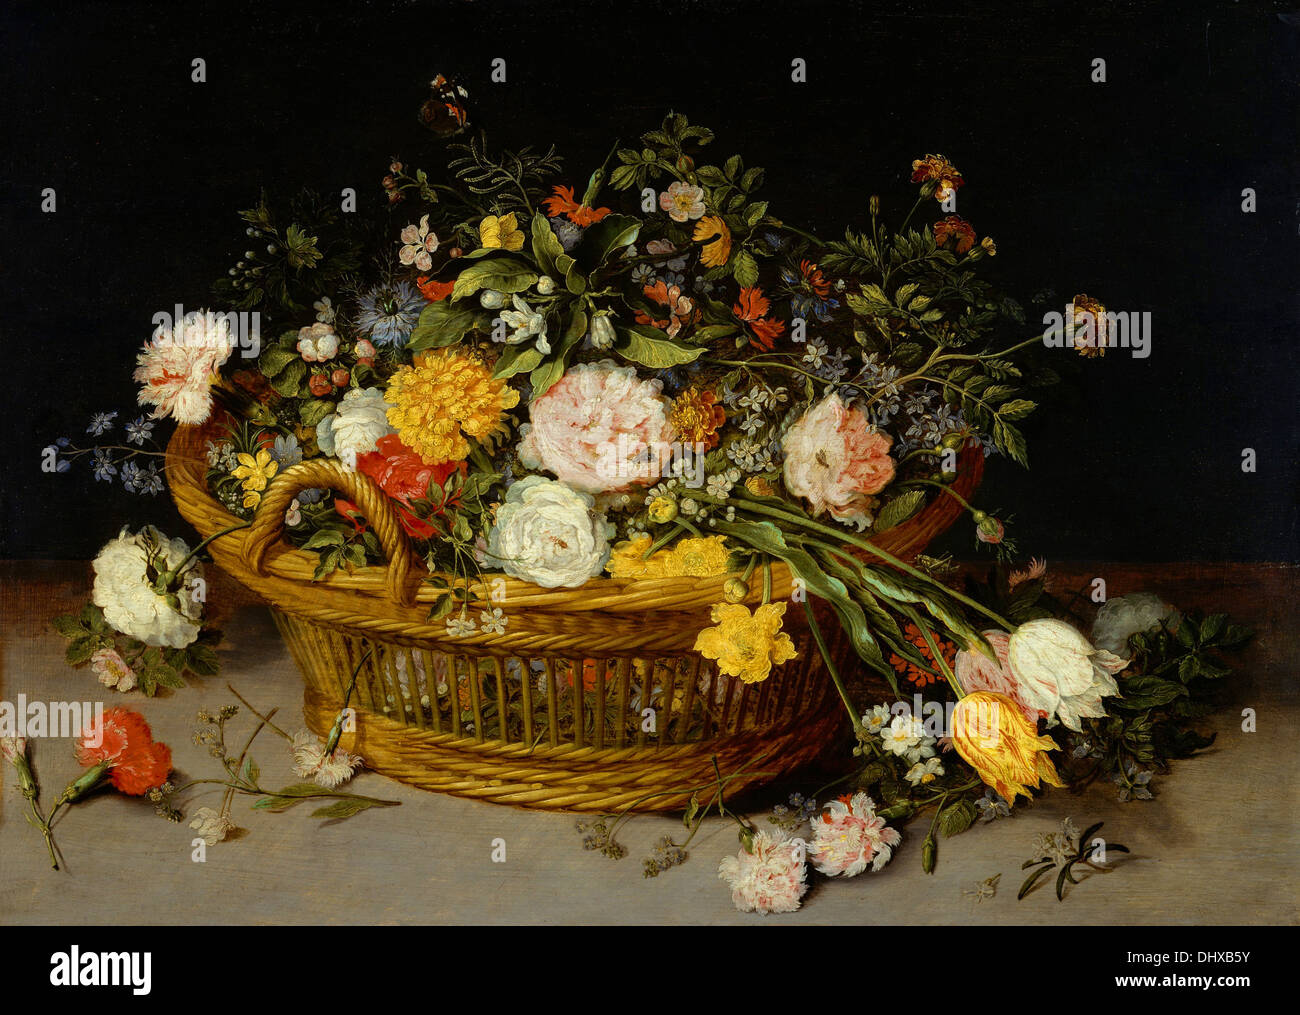 A Basket of Flowers - by Jan Brueghel the Younger, 1620 - Stock Image